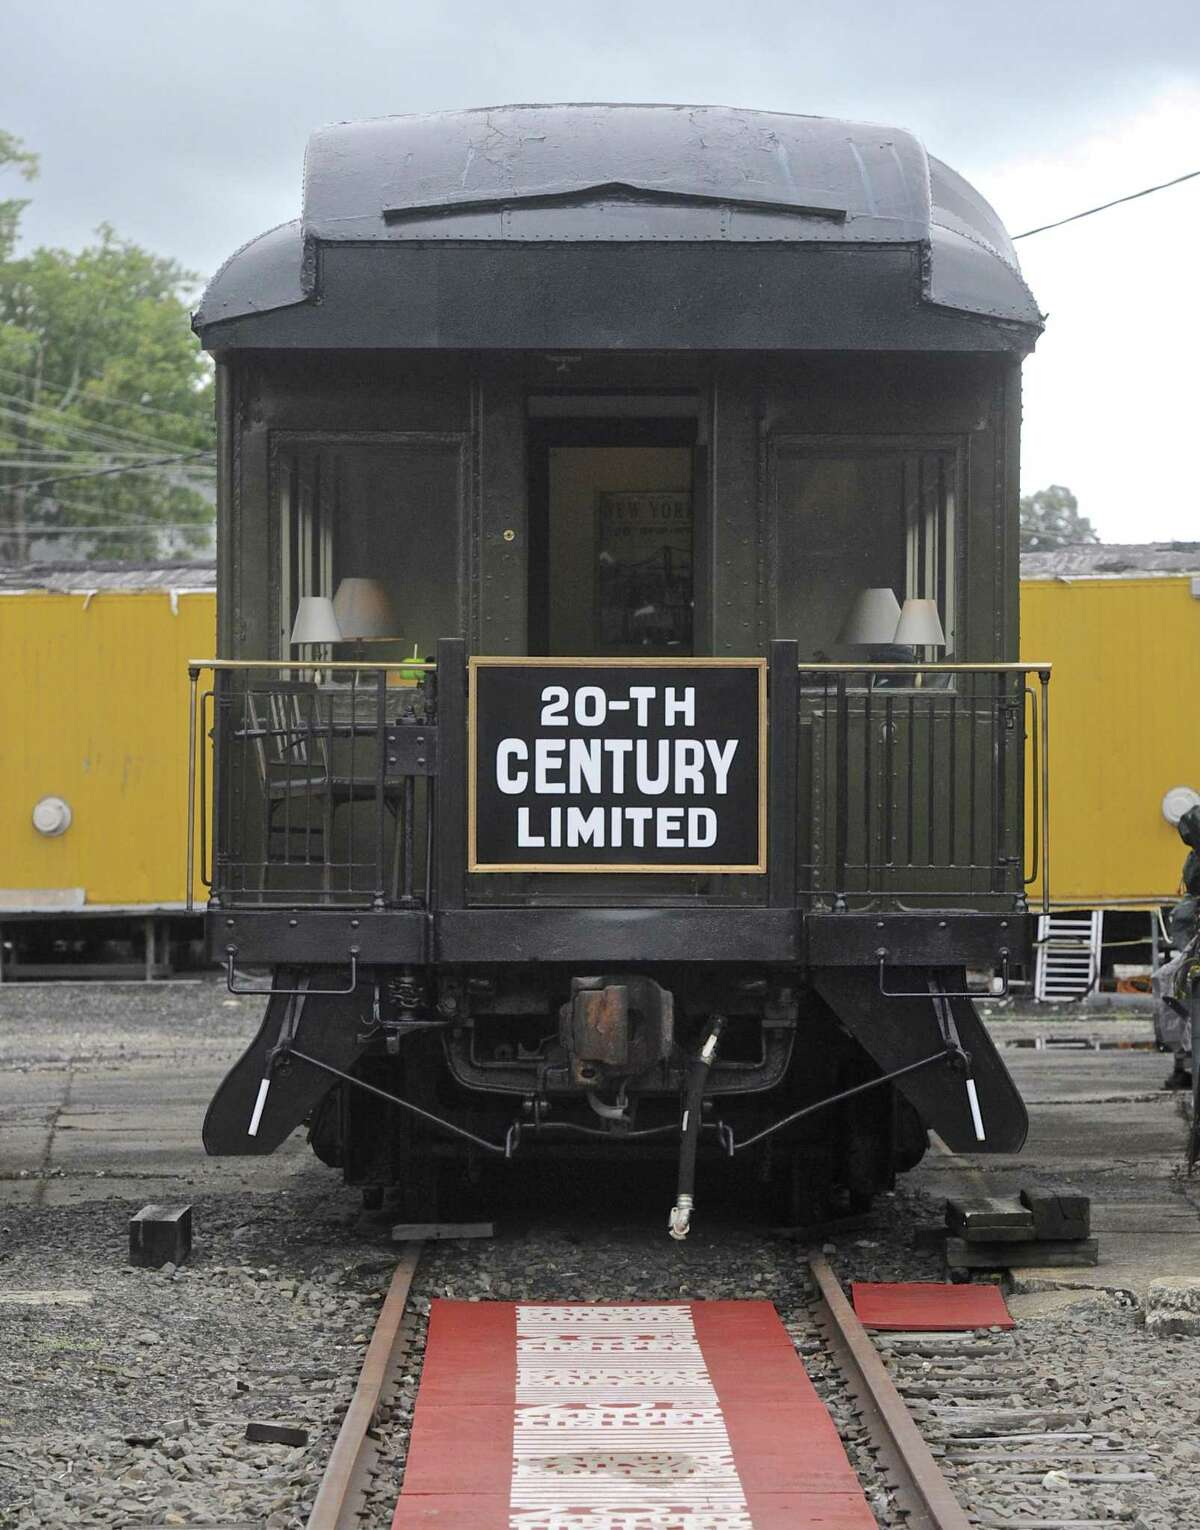 The 20th Century Limited ran for 65 years between New York's Grand Central Terminal and Chicago. The Danbury Rail Museum has restored one of its cars.